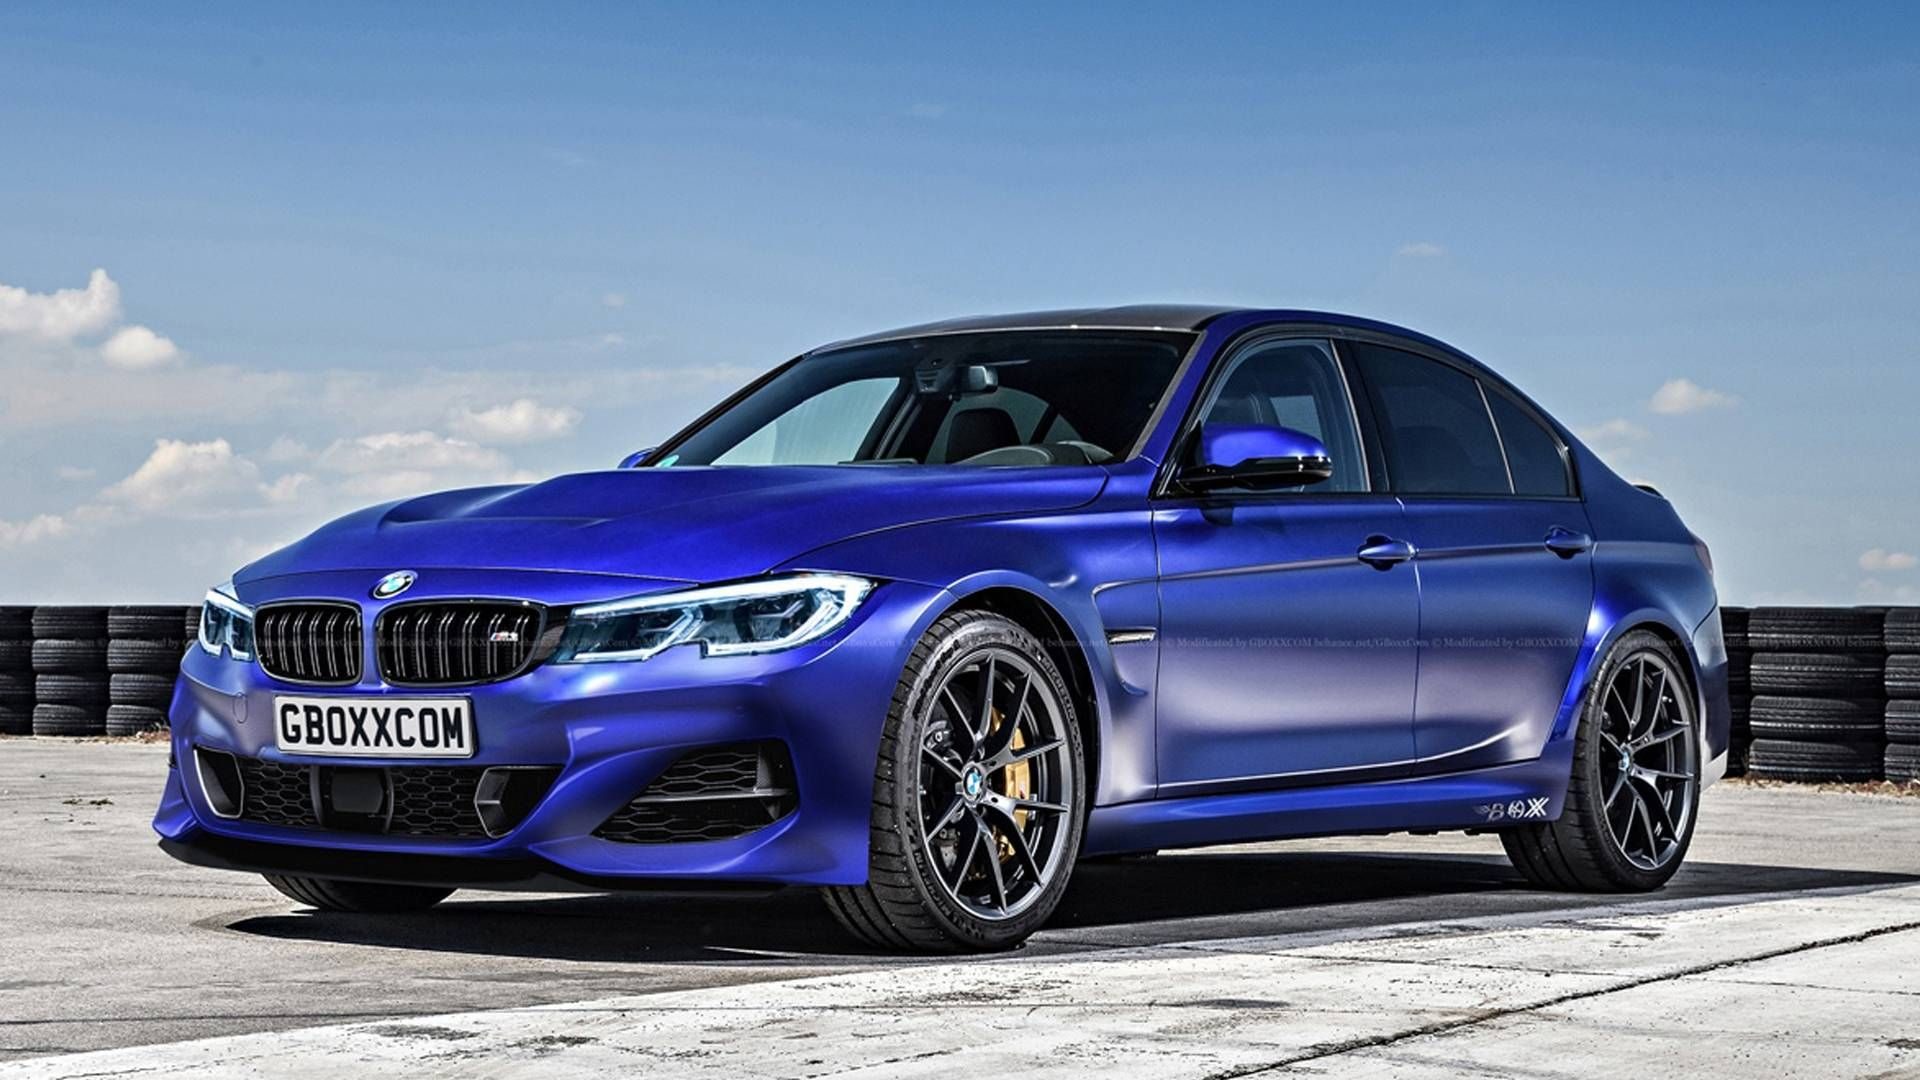 Next Gen 2020 Bmw M3 Rendered Looks Like M3 Cs With New Face